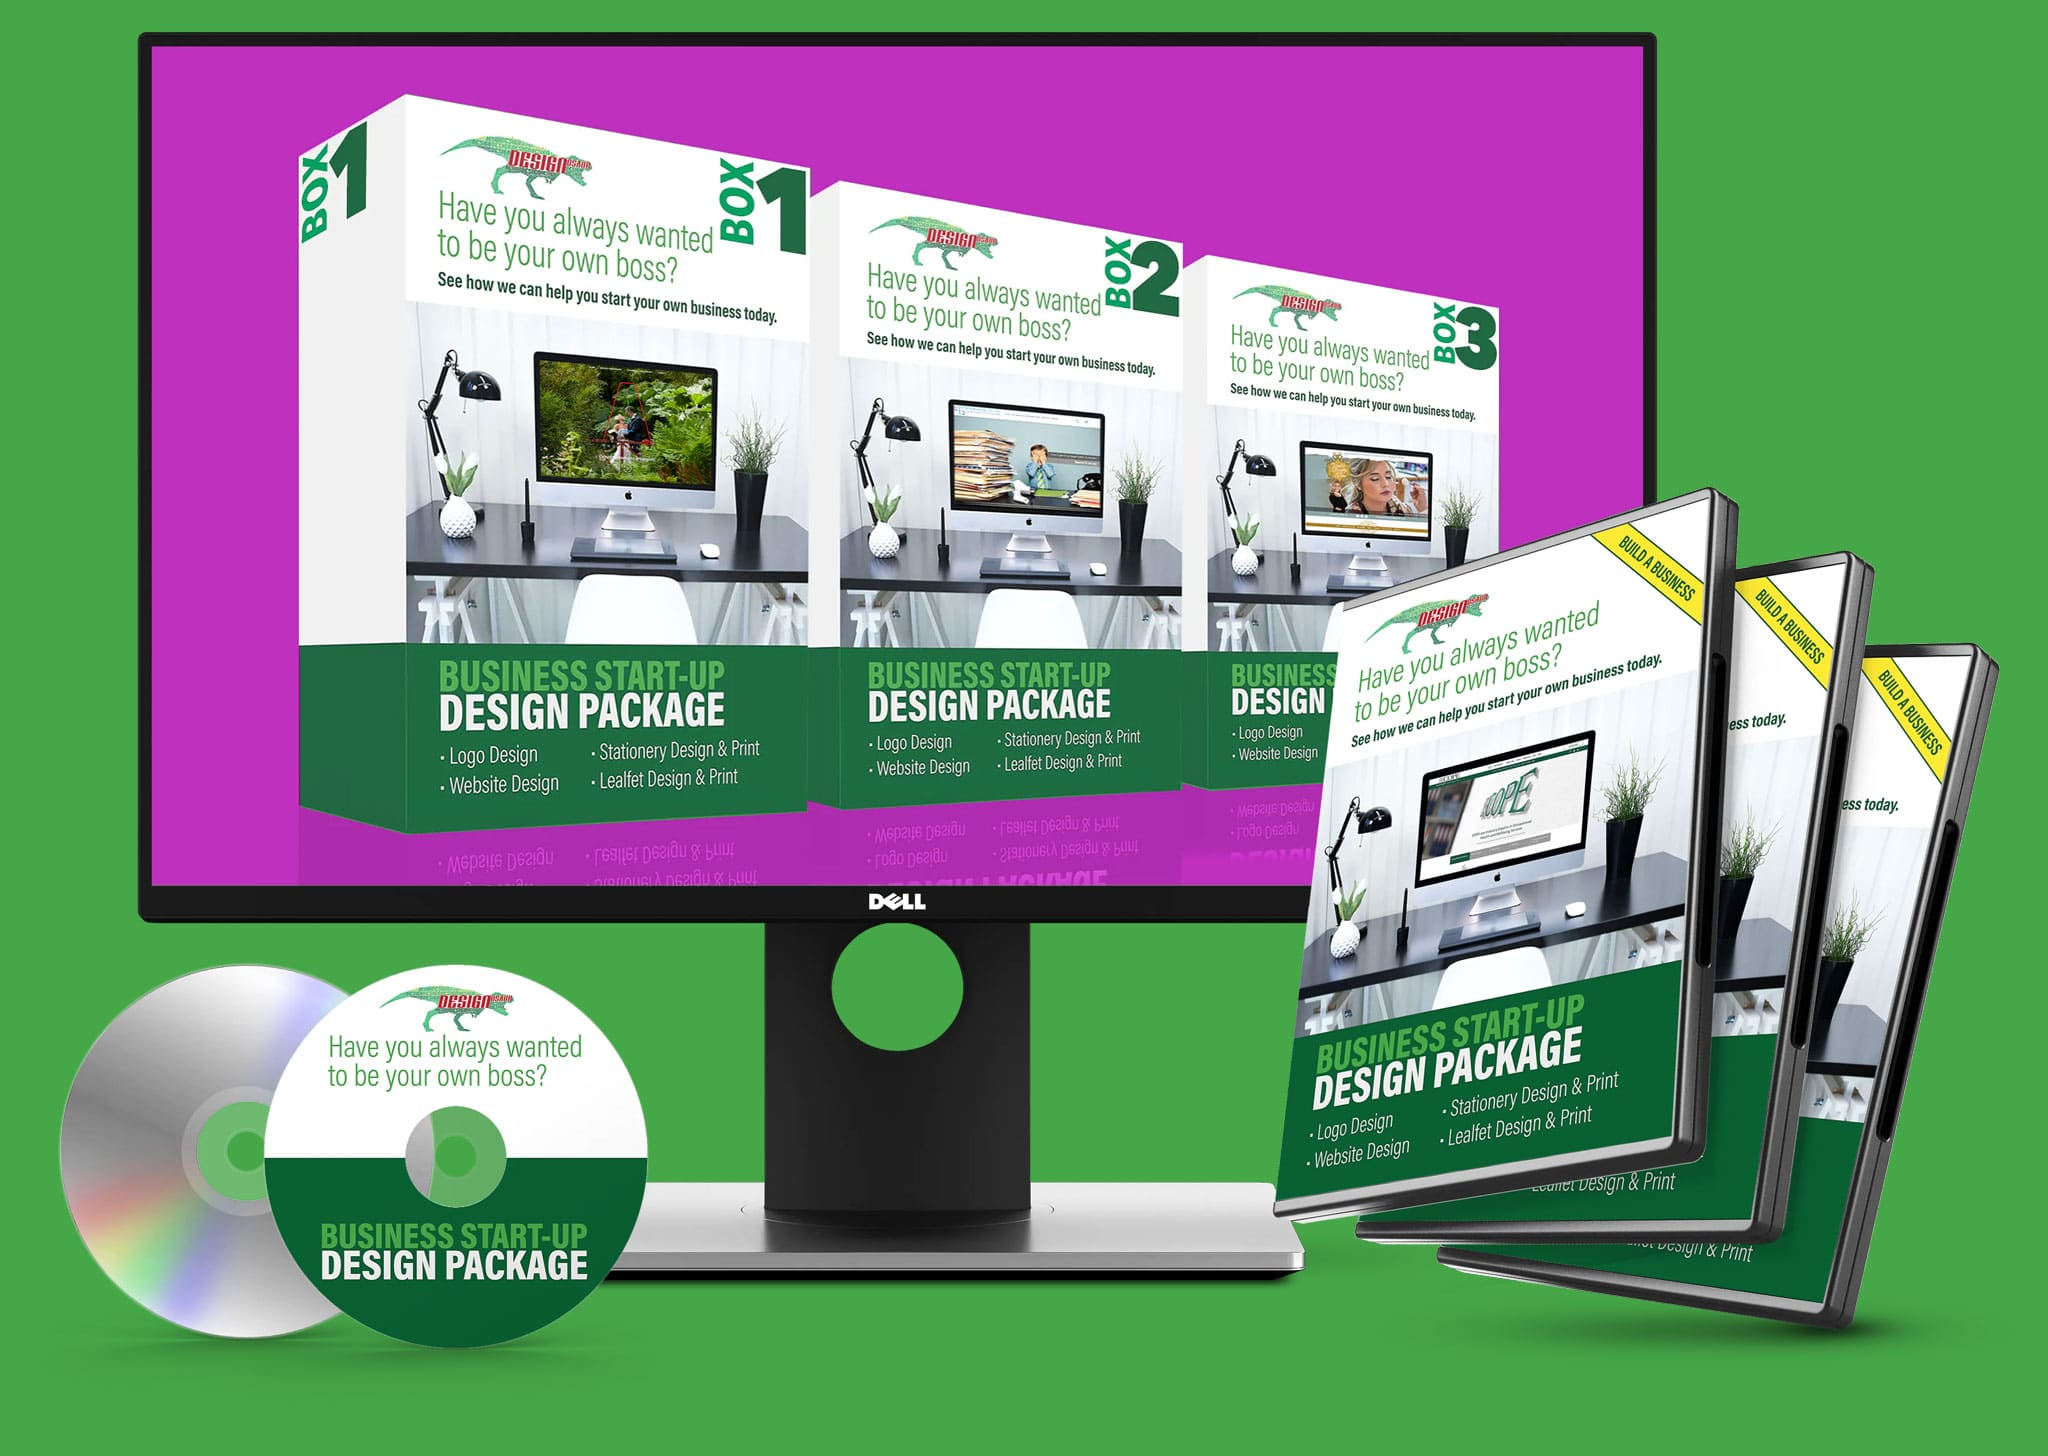 Business Start Up Design Package Mock Up Bundle